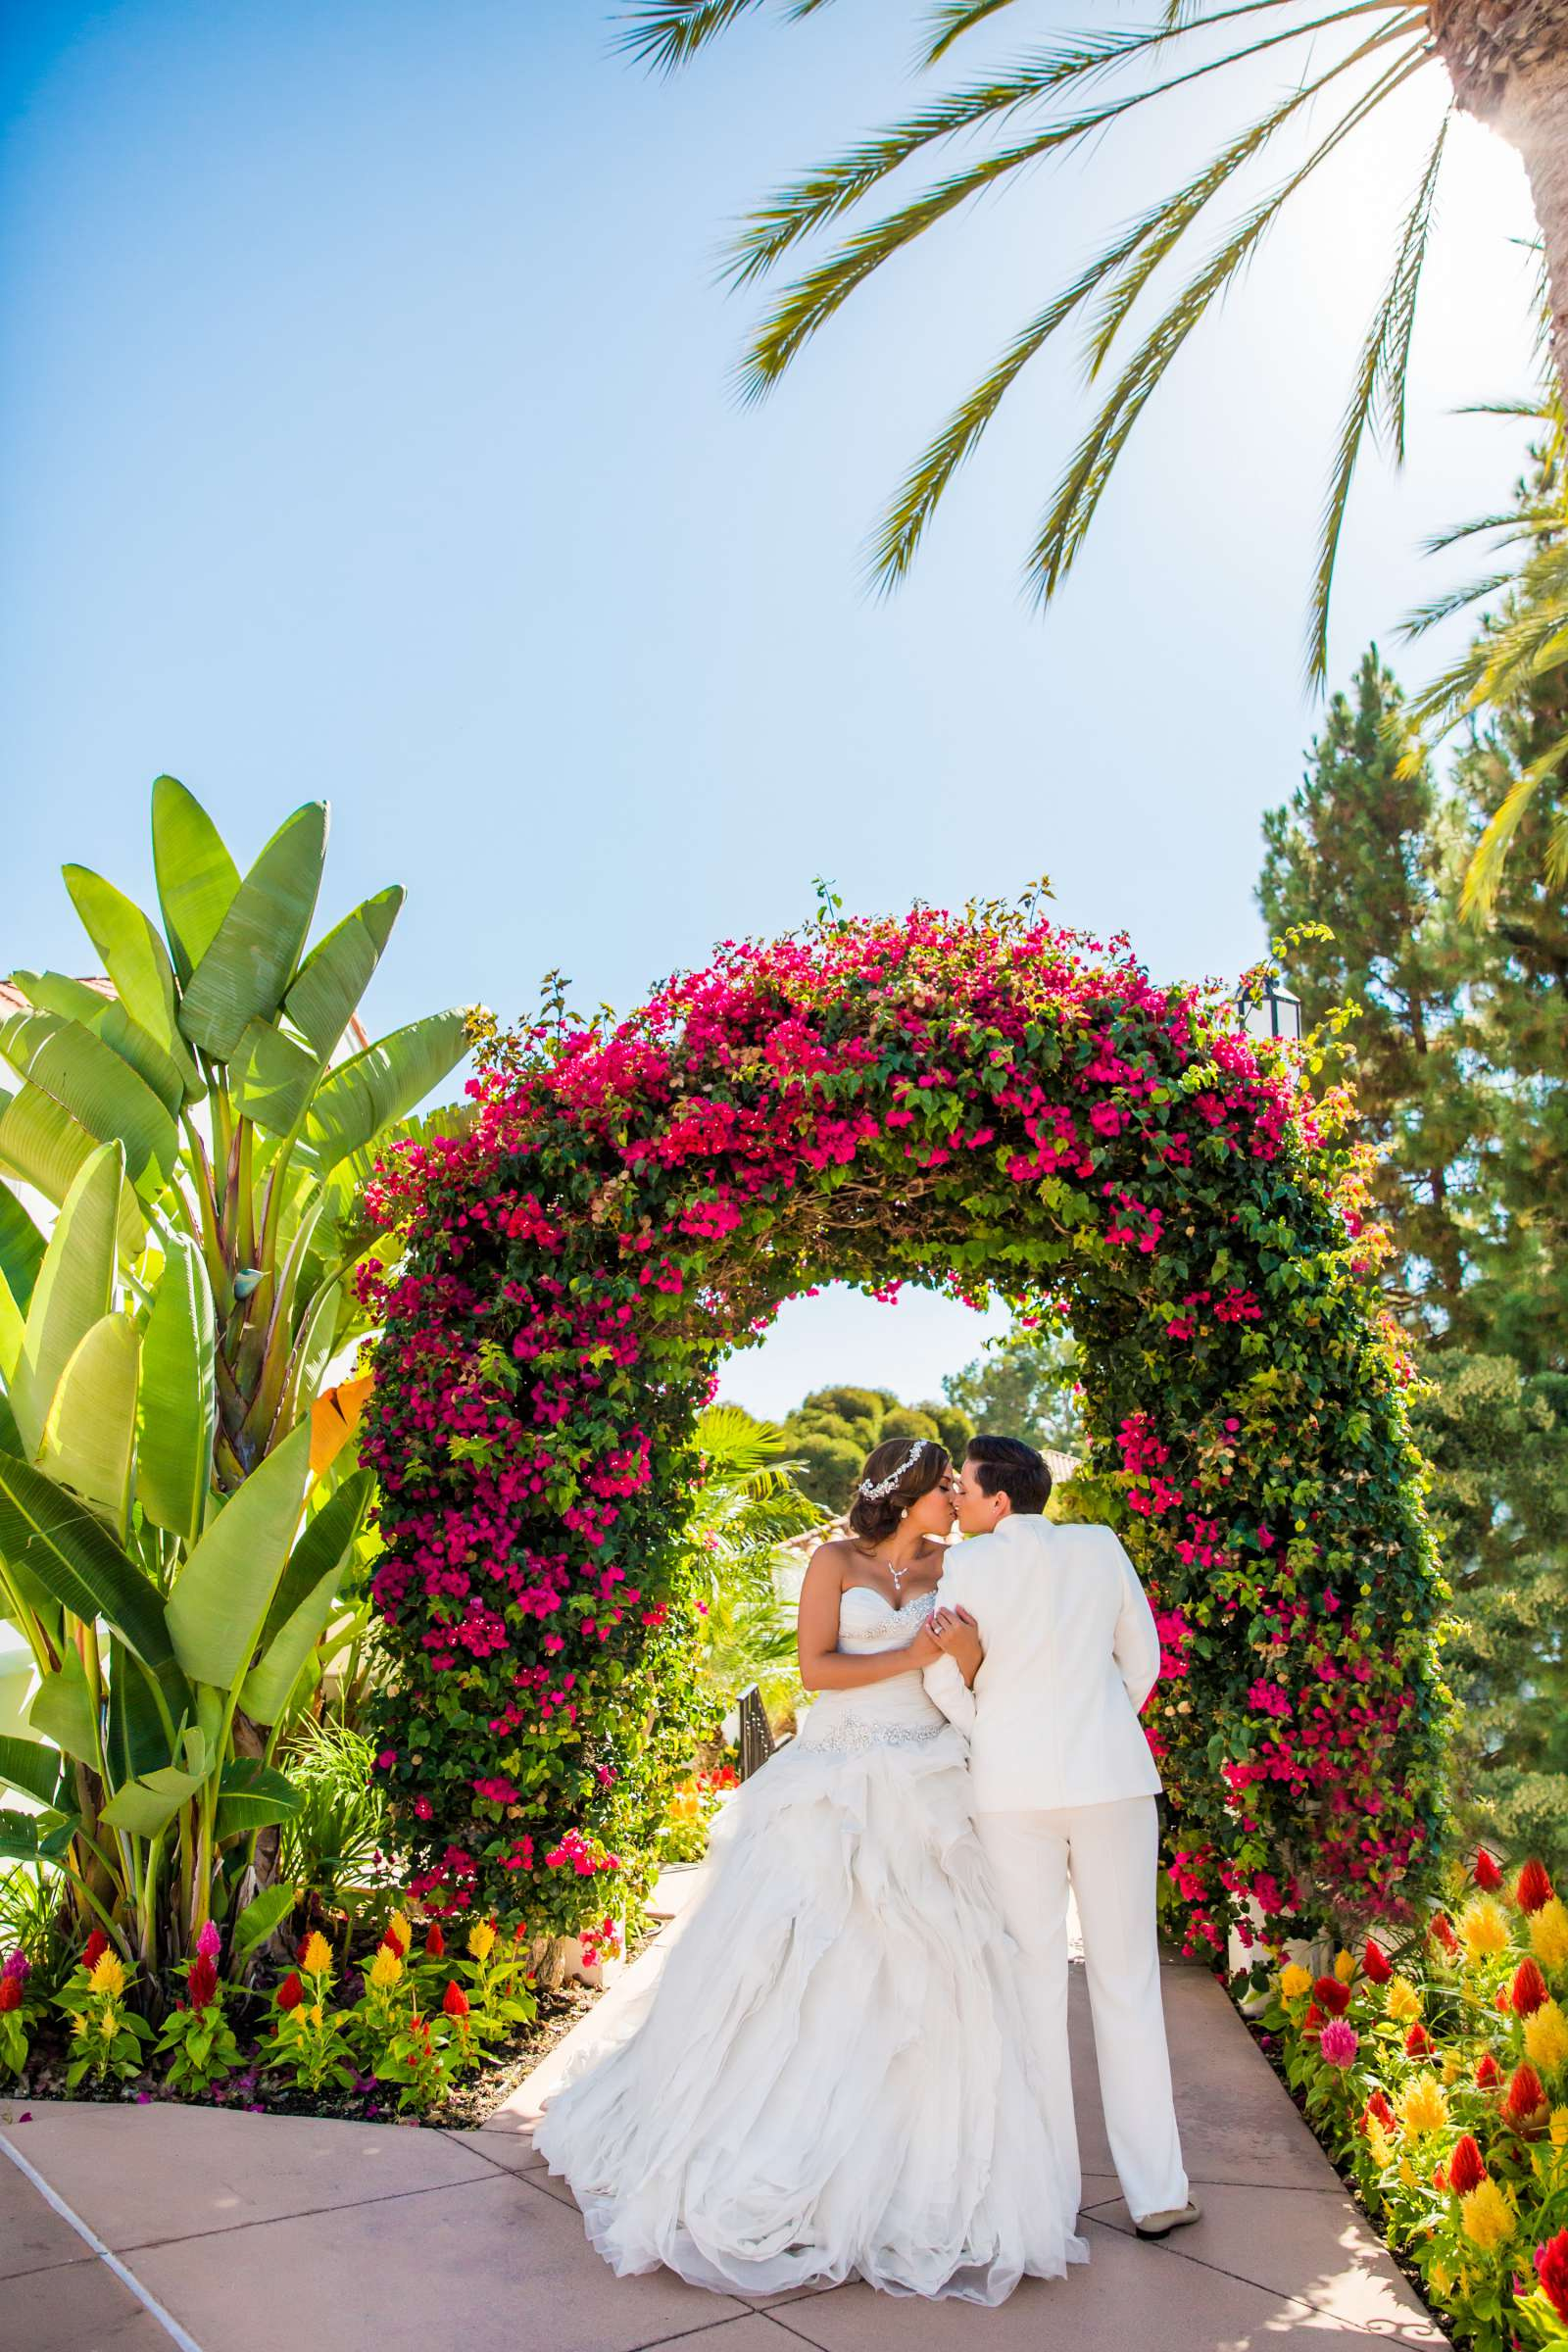 Omni La Costa Resort & Spa Wedding coordinated by Nahid Global Events, Natasha and Kate Wedding Photo #257334 by True Photography